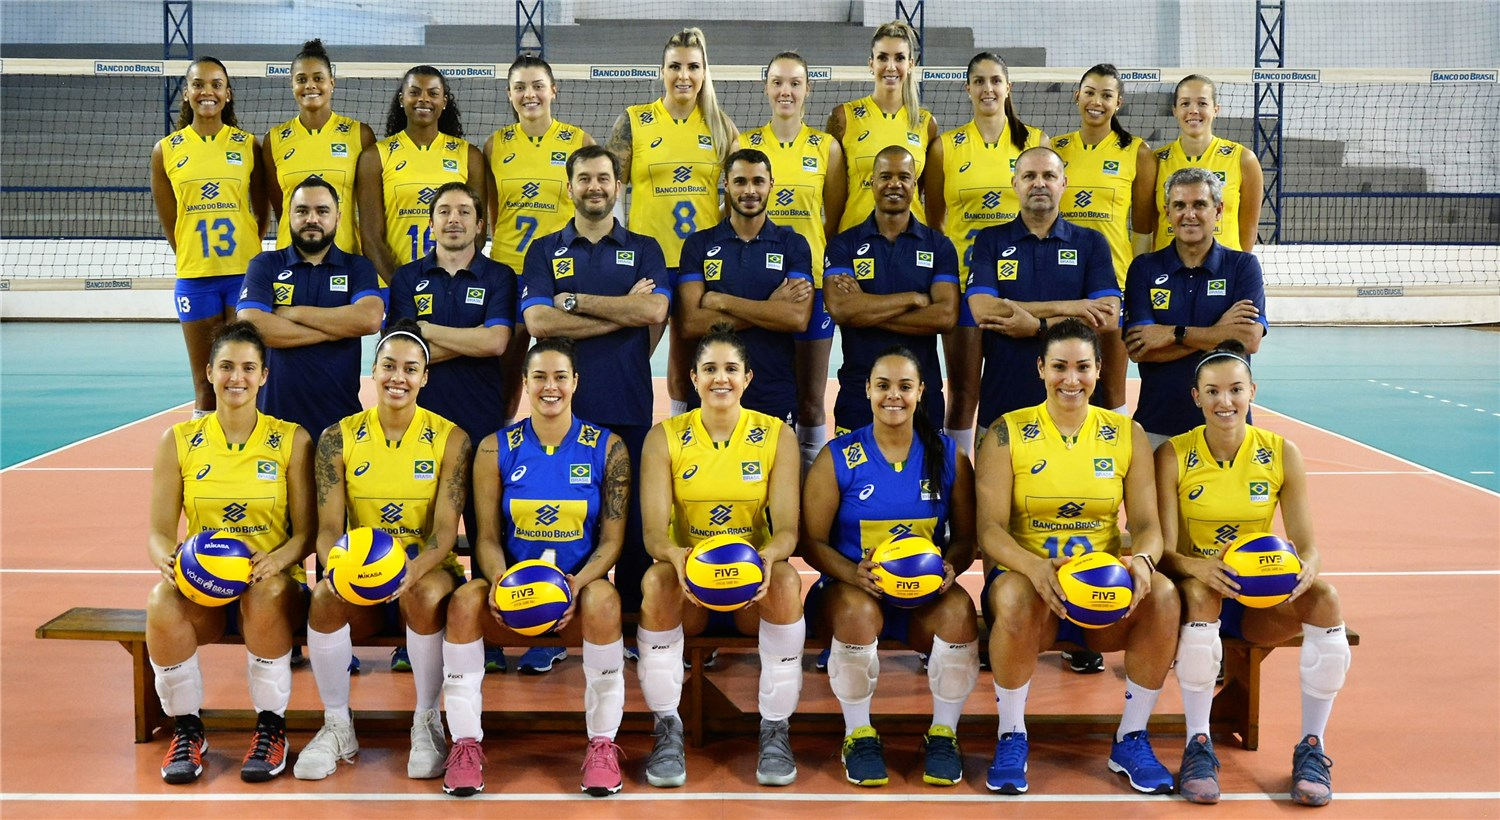 Overview Brazil Fivb Volleyball Women S World Championship Japan 2018